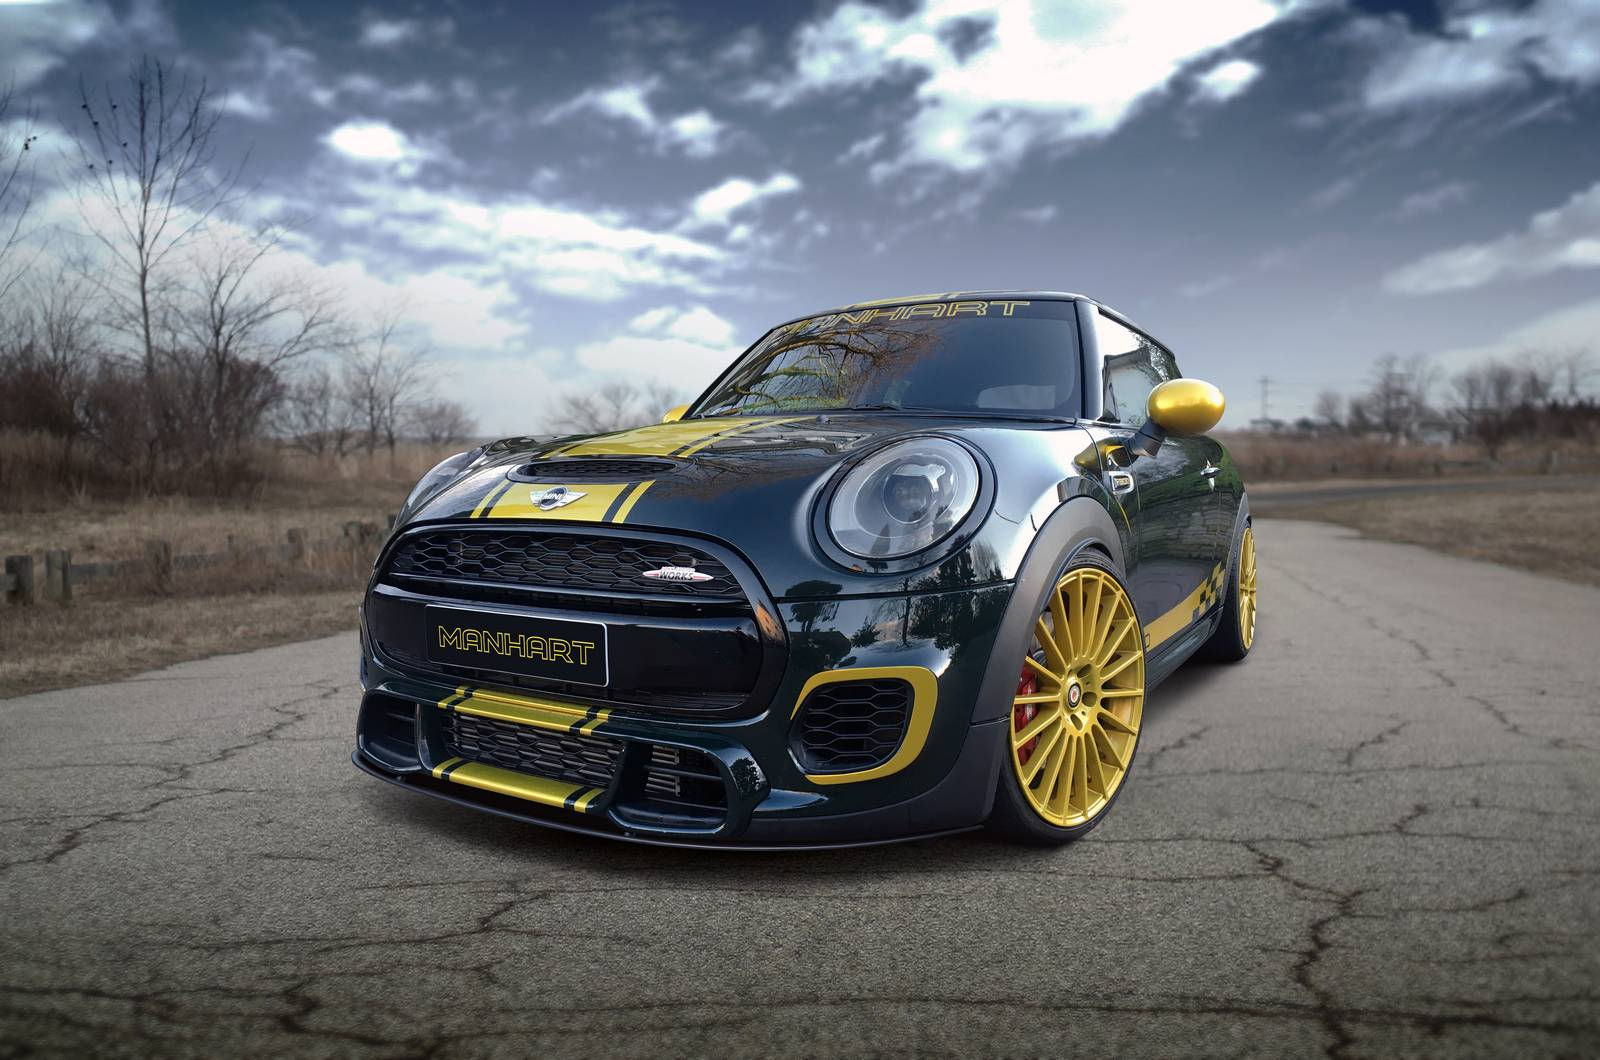 official mini cooper jcw f300 by manhart performance gtspirit. Black Bedroom Furniture Sets. Home Design Ideas